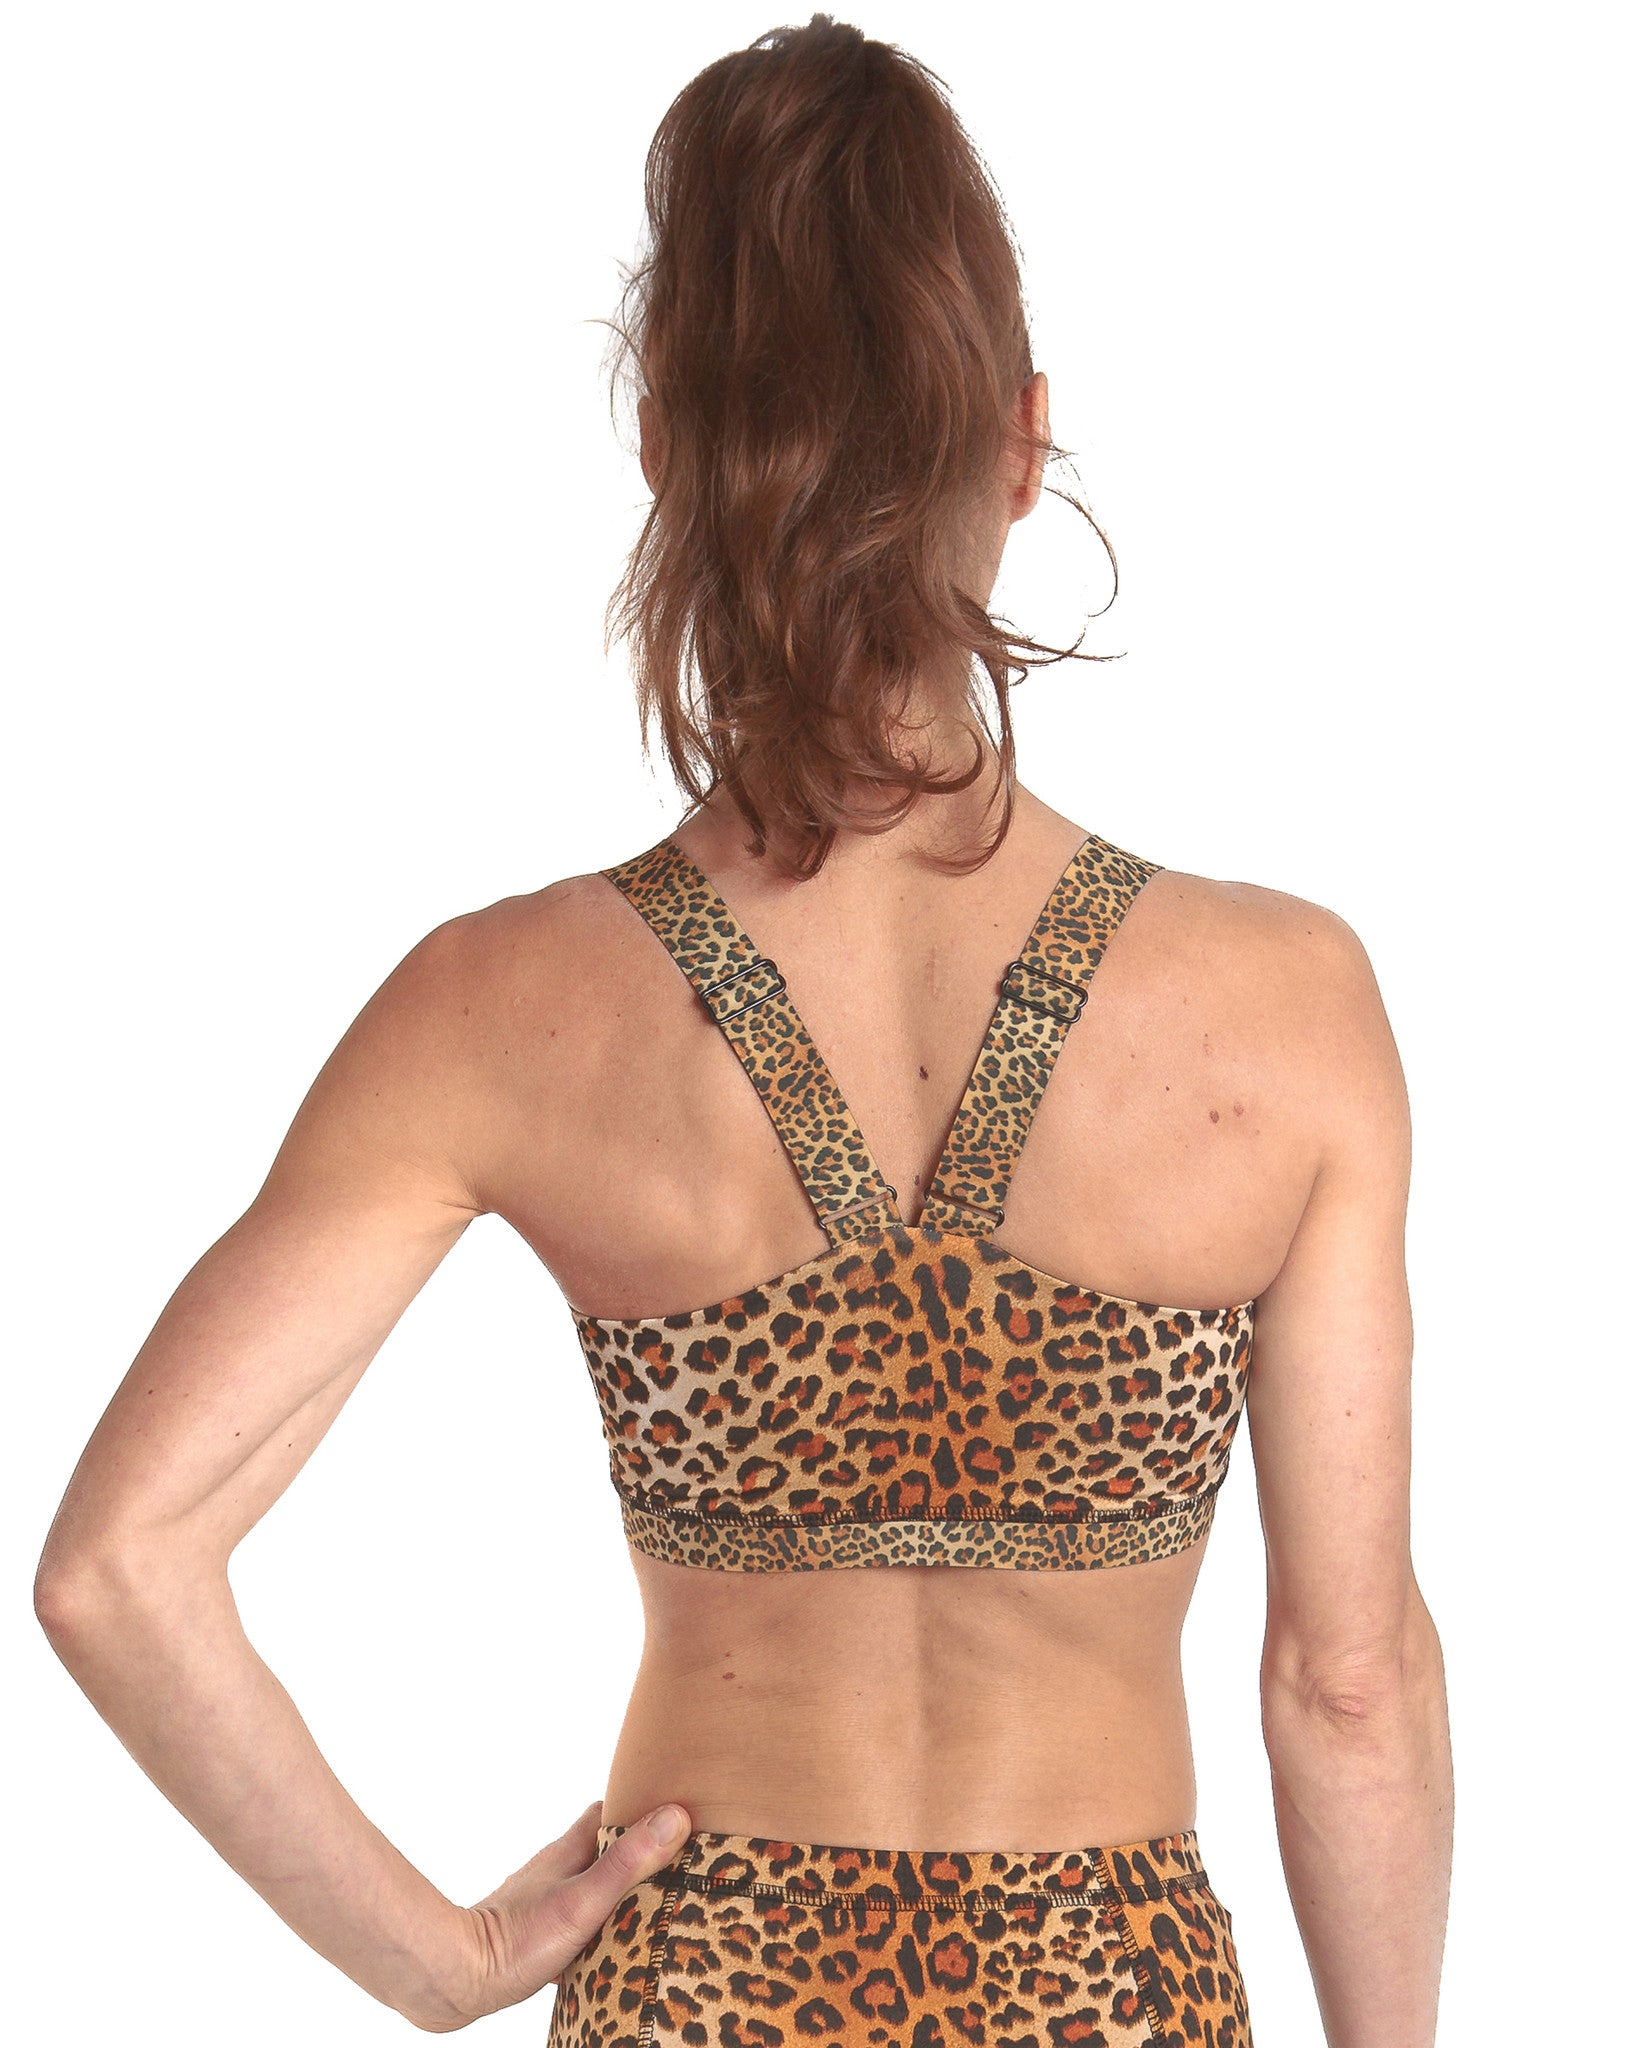 LPRD Leopard Crop Top | Close-Up Back View